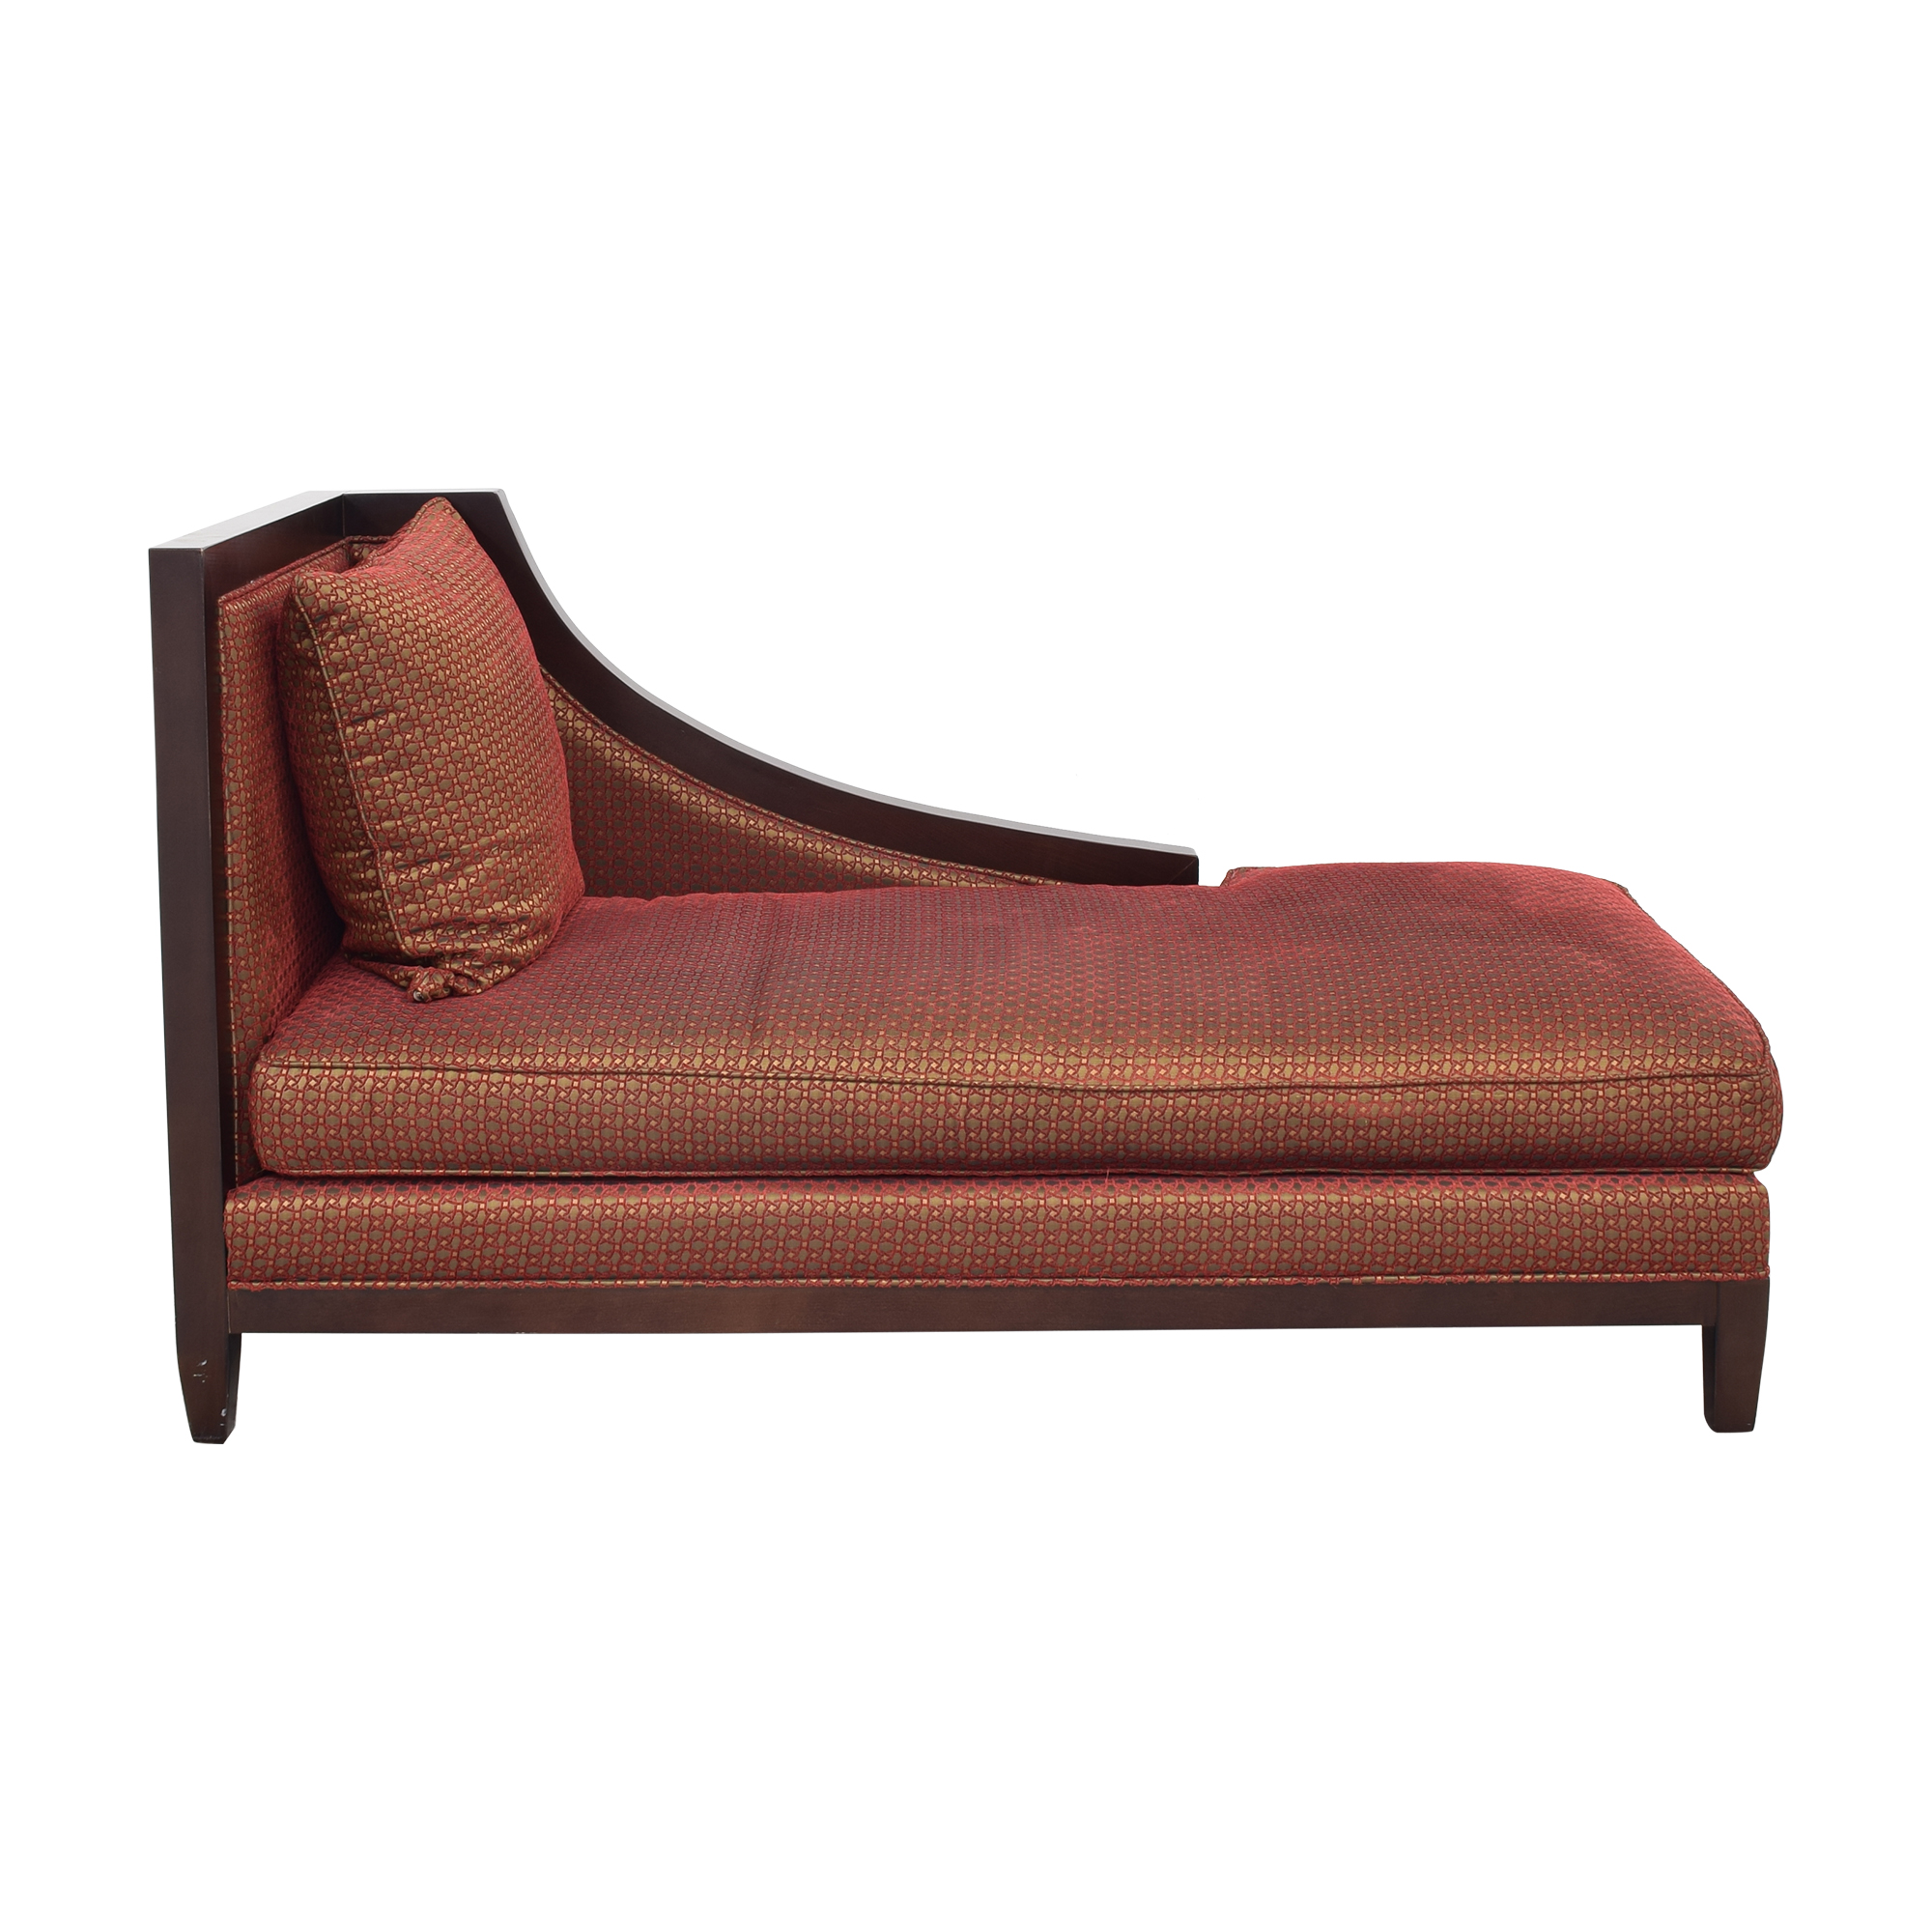 Nautica Home Nautica Home Chelsea Chaise coupon